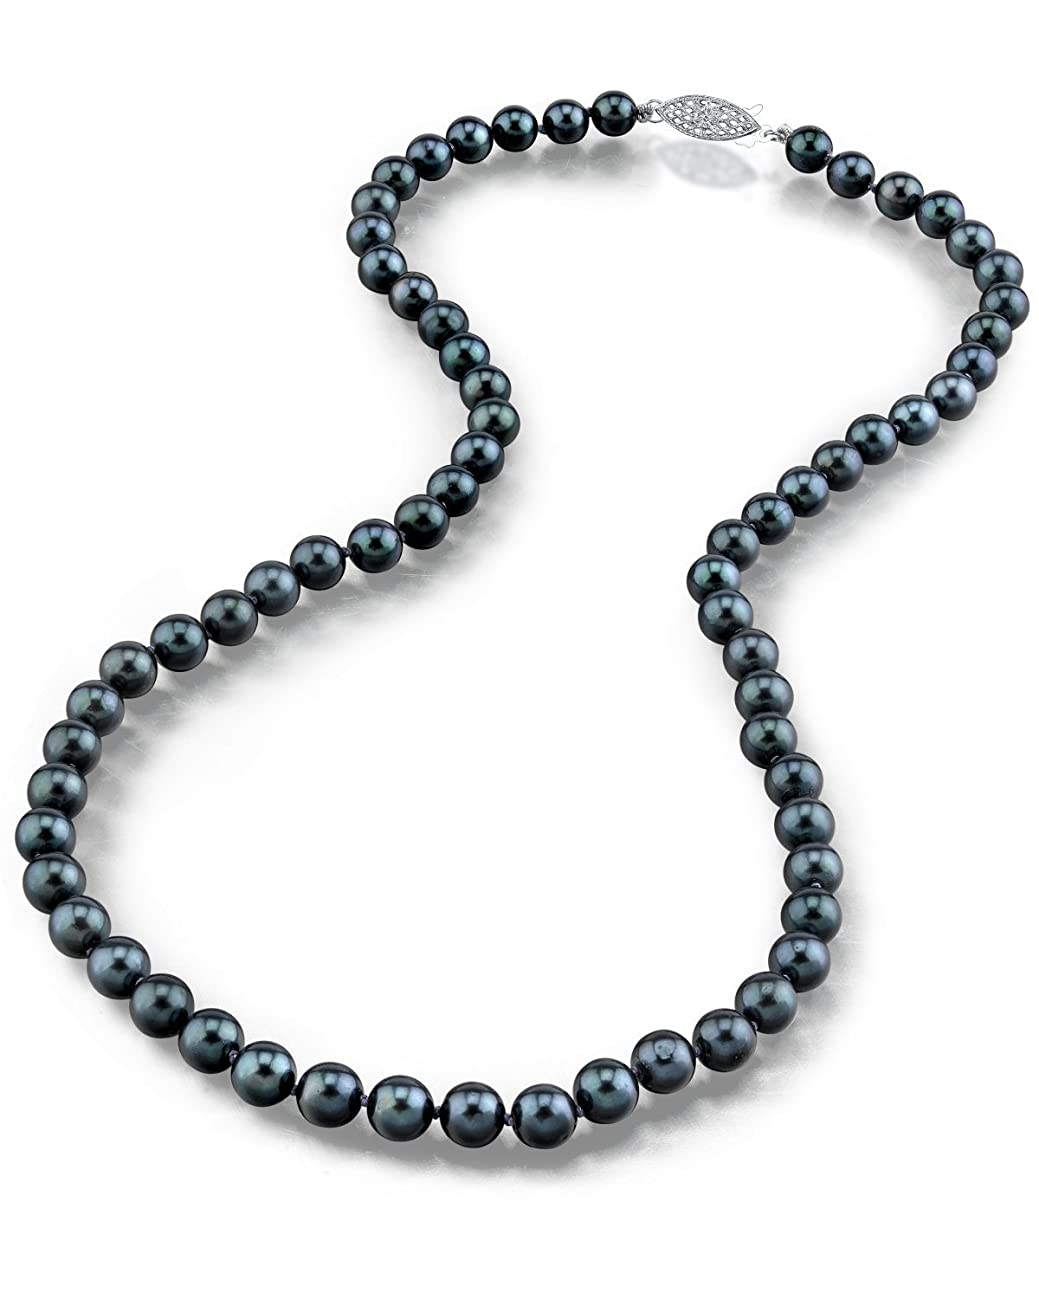 THE PEARL SOURCE 14K Gold Round Genuine Black Japanese Akoya Saltwater Cultured Pearl Necklace in 18